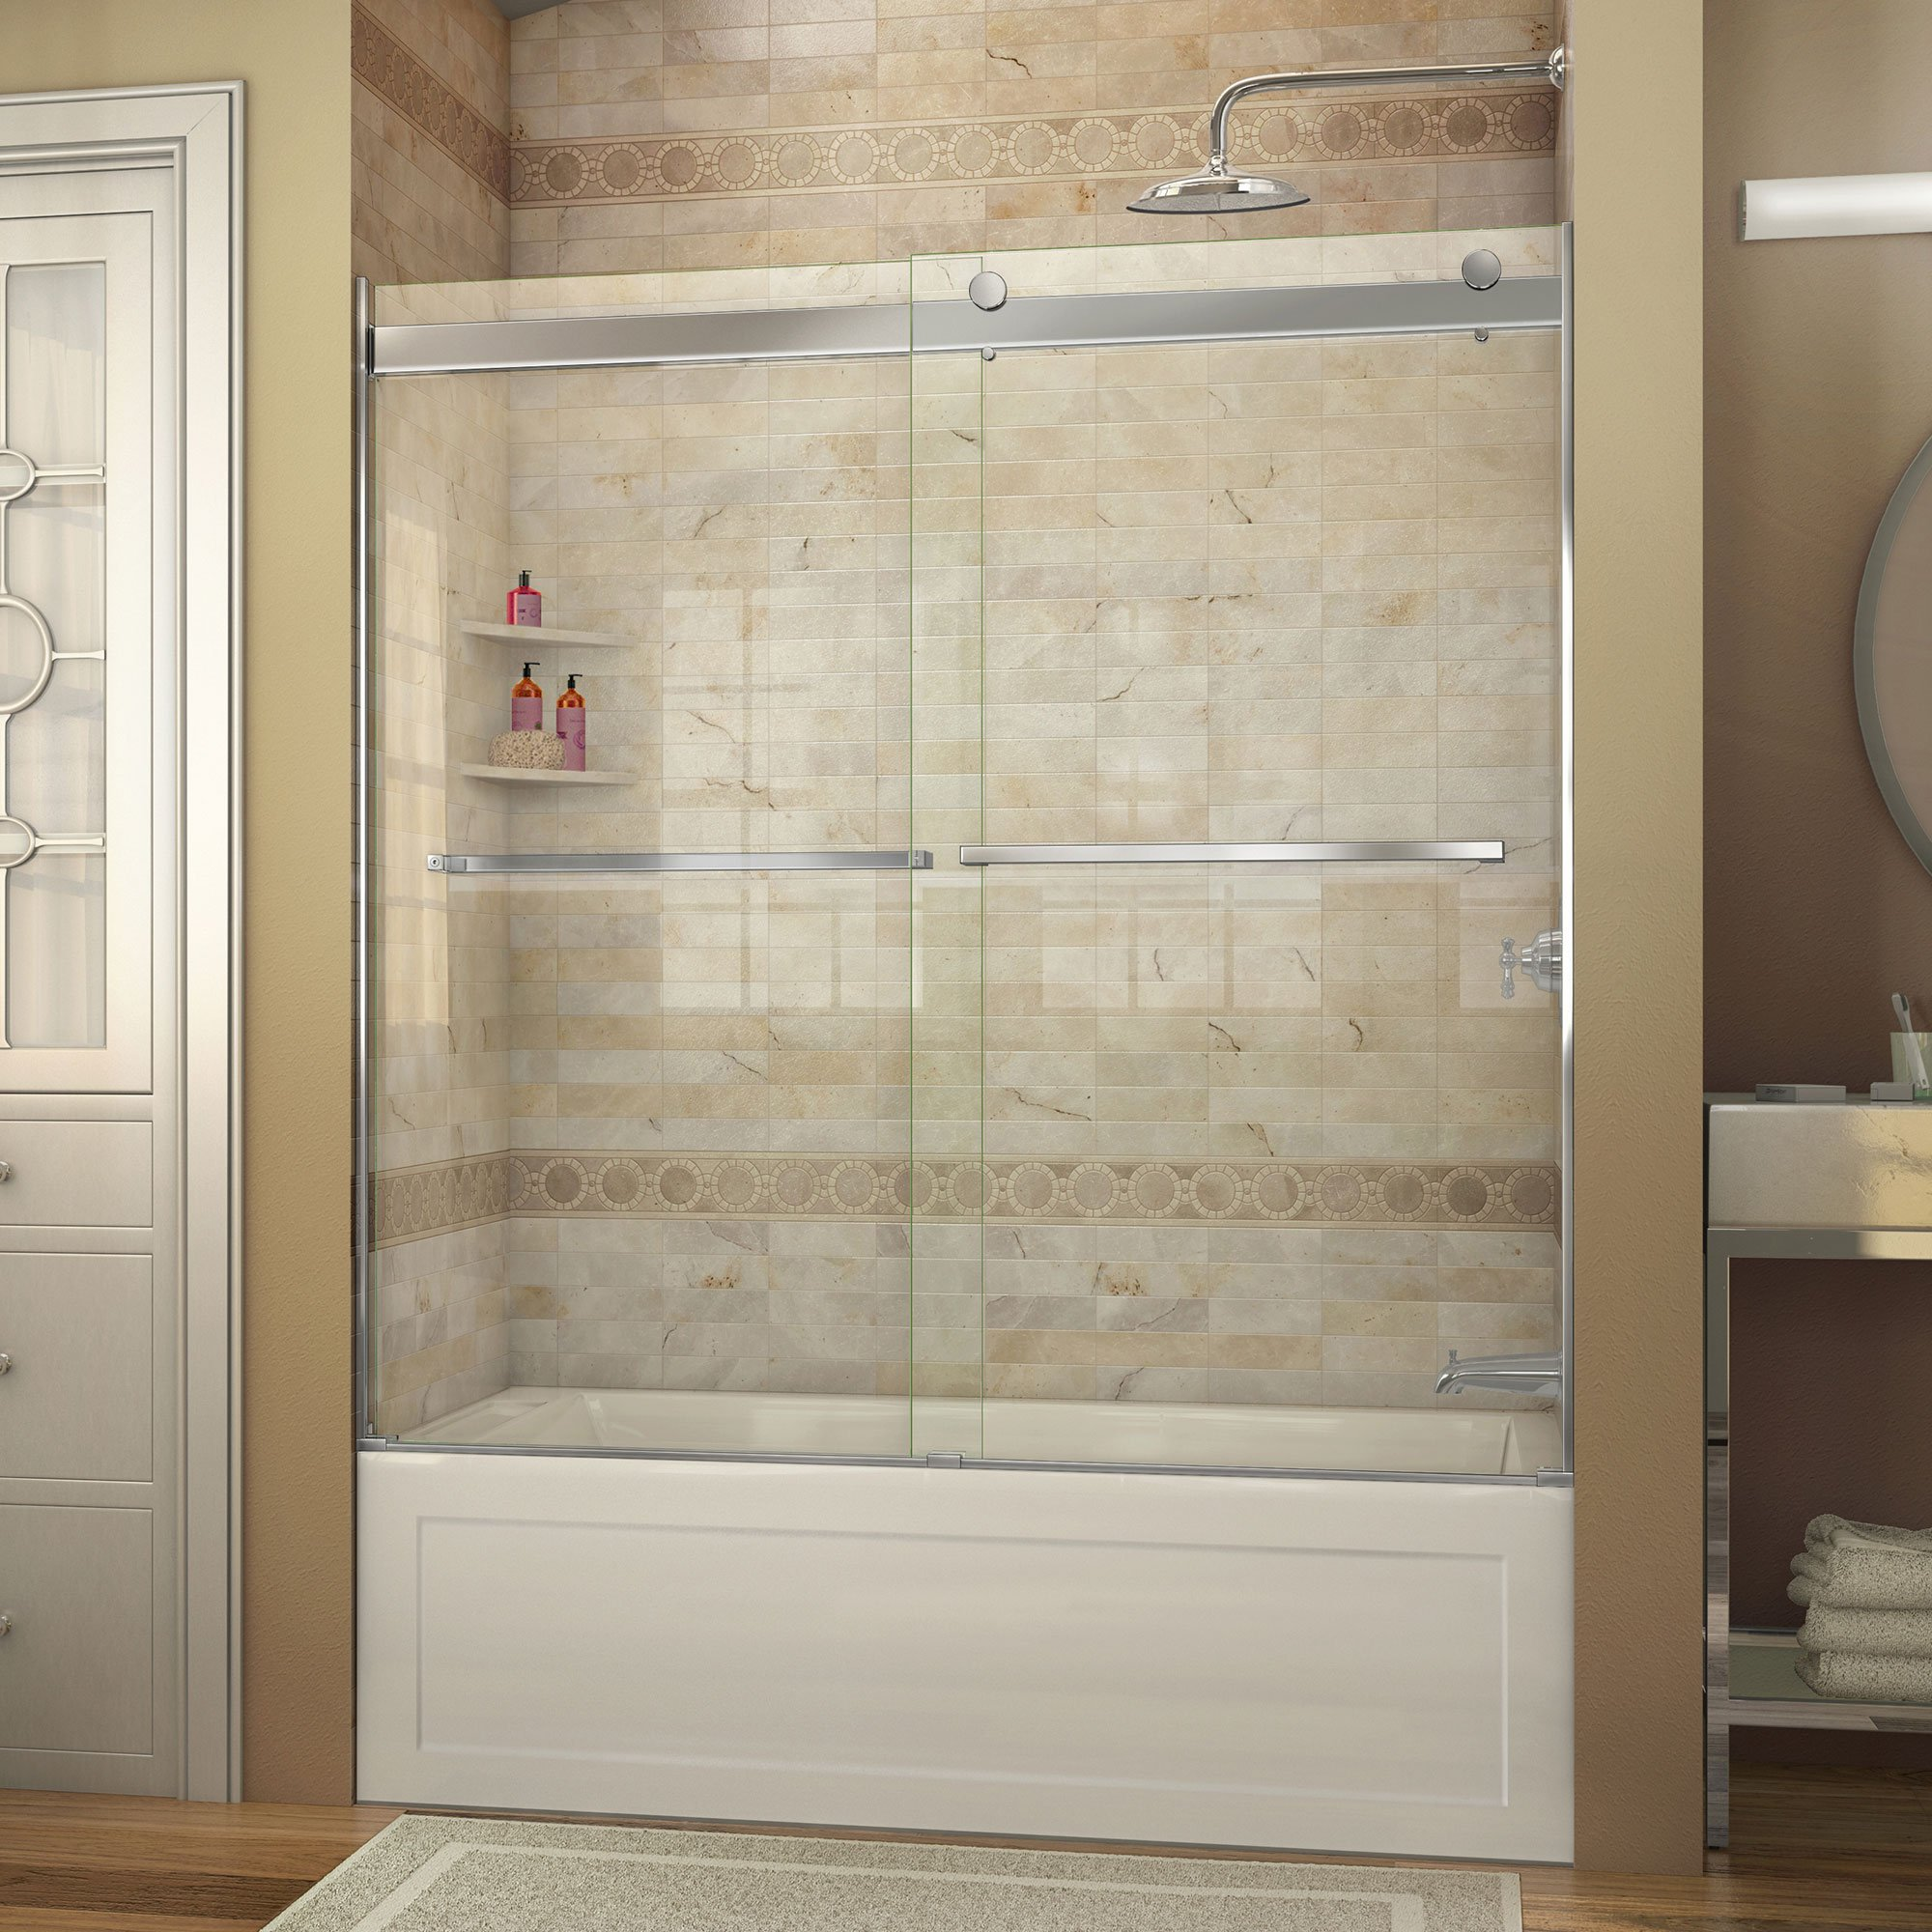 DreamLine Essence 56-60 in. Width, Frameless Bypass Sliding Tub Door, 5/16'' Glass, Chrome Finish